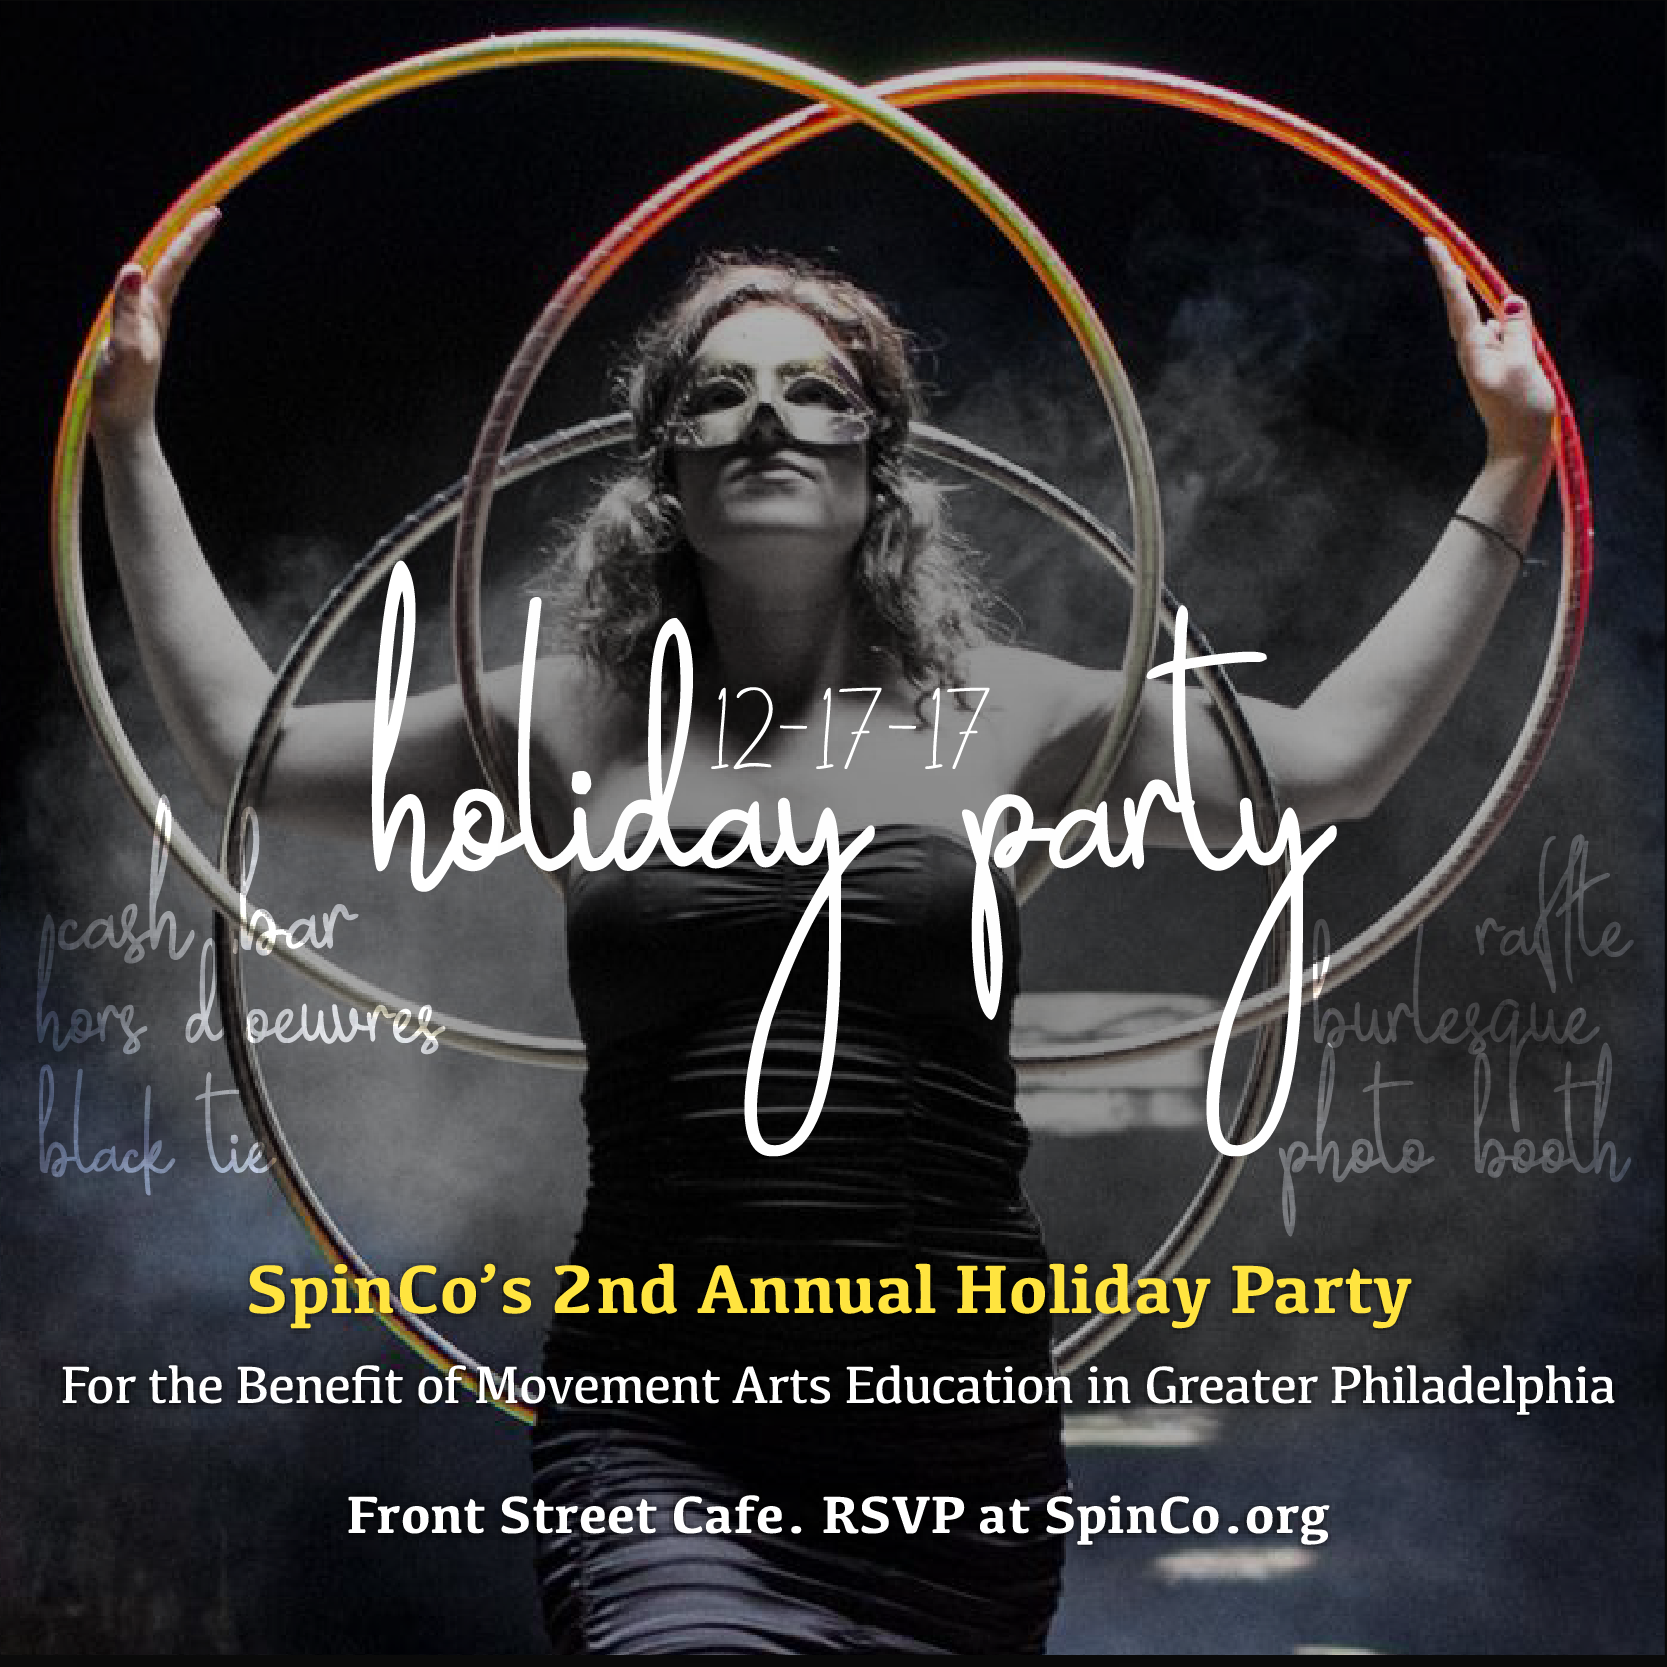 Instagram Spin Co Holiday Party 2017 03